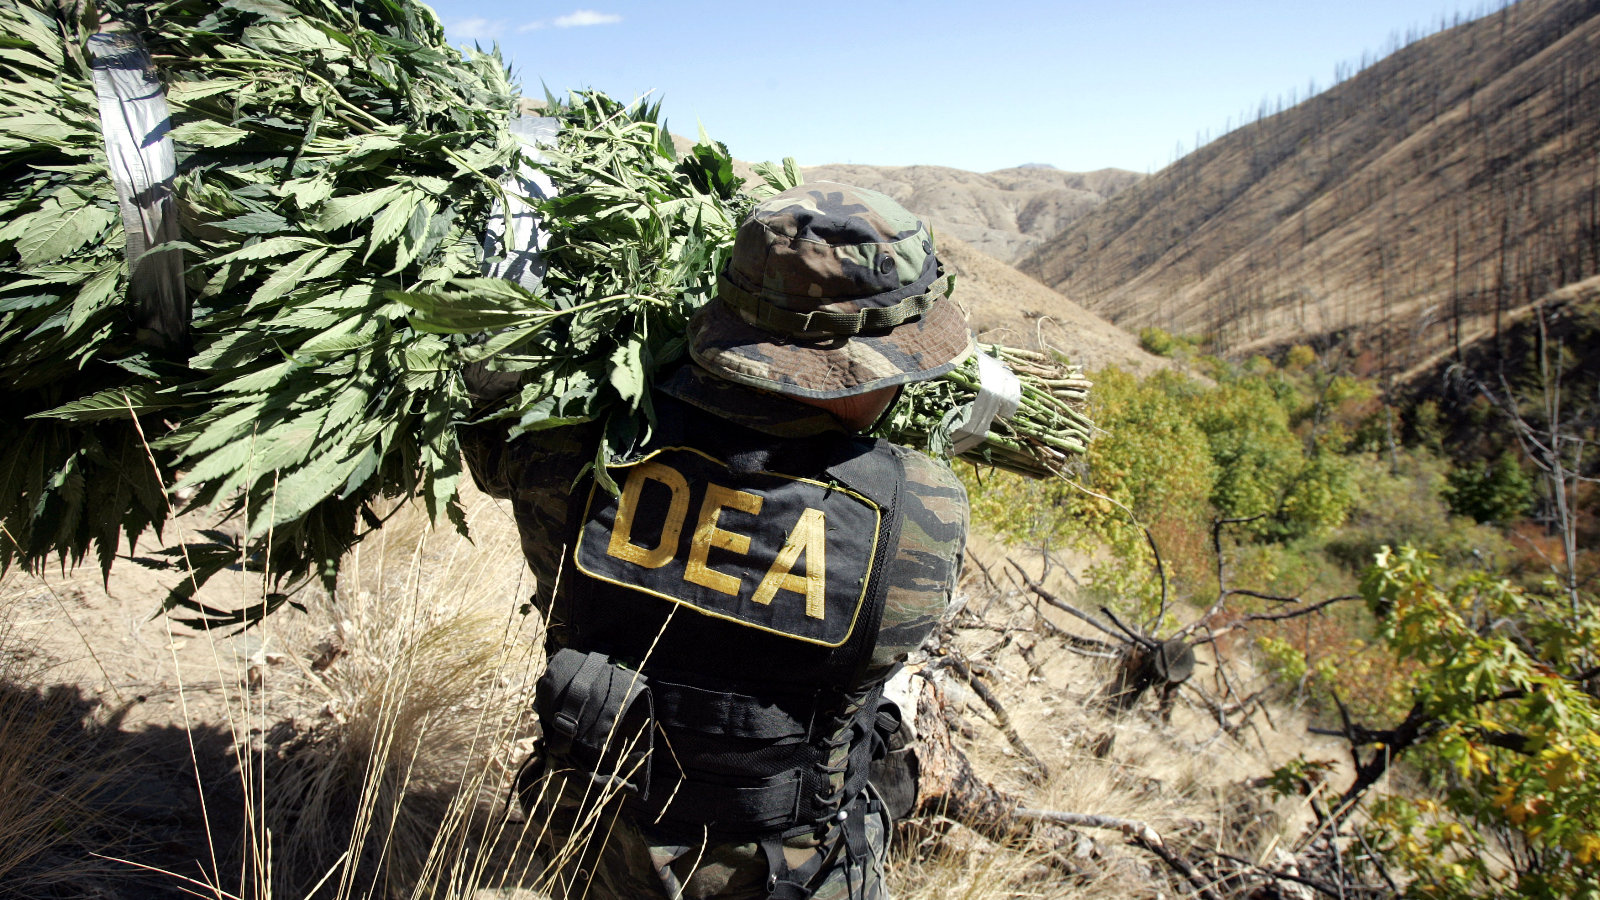 DEA Illegally GPS-Tracked a Drug Runner, Now It Can't Enter 150 Pounds of Found Weed Into Evidence [Drugs]